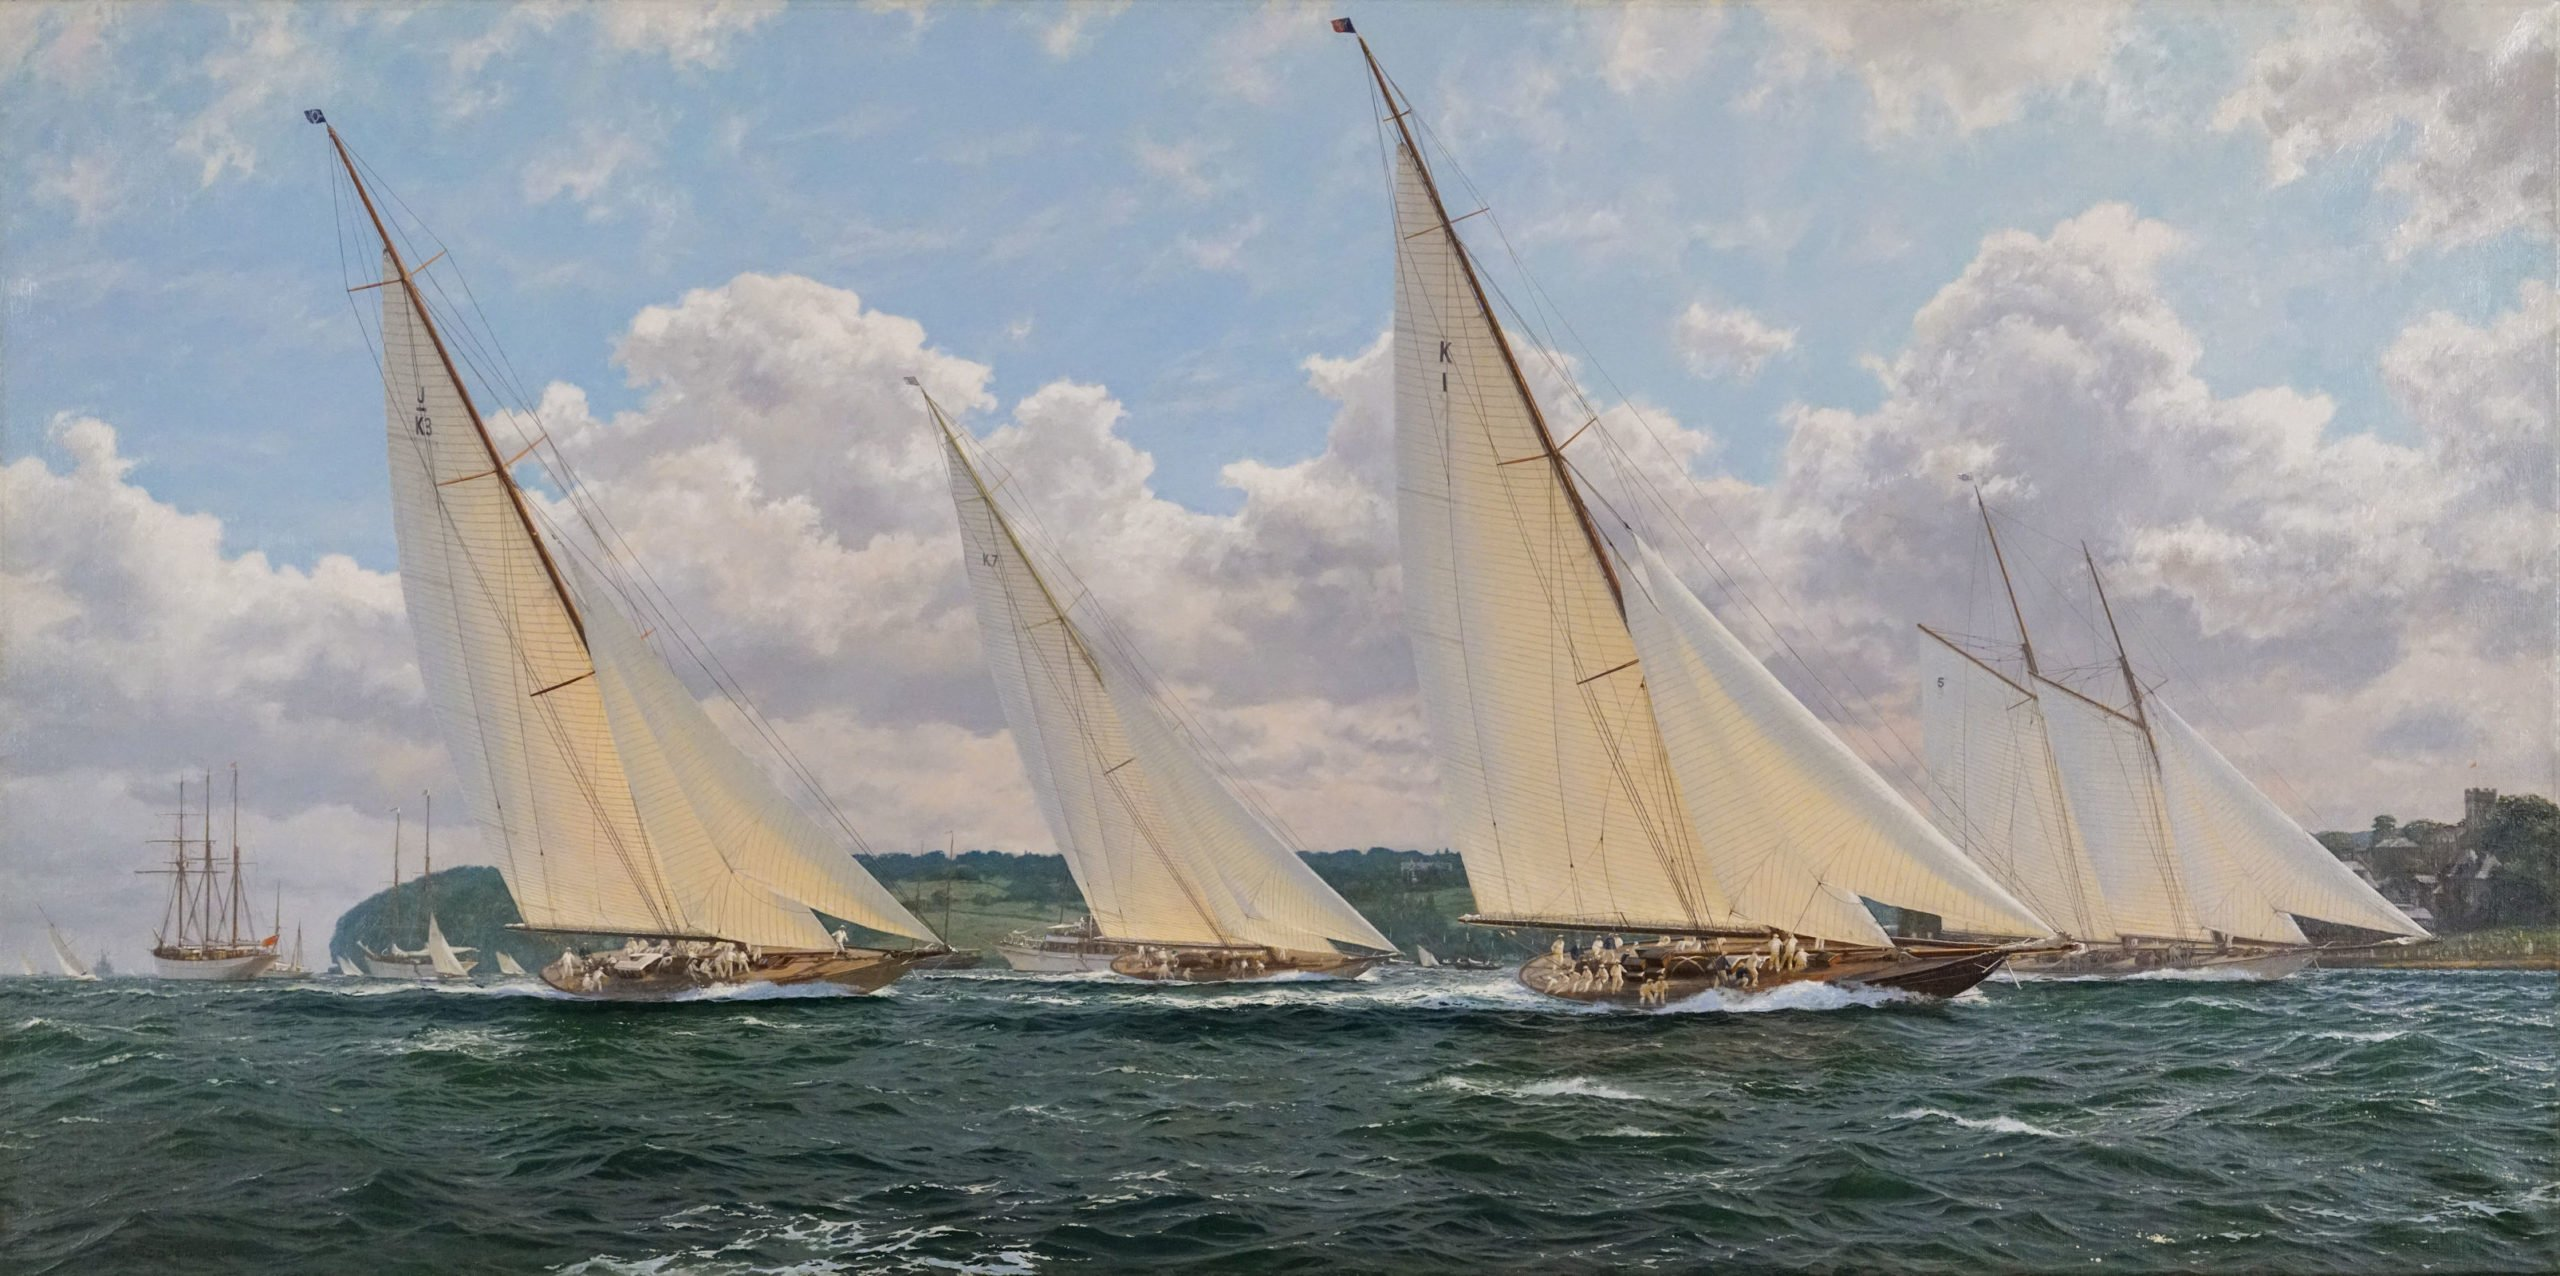 4 yachts with white sails with blue sky and clouds